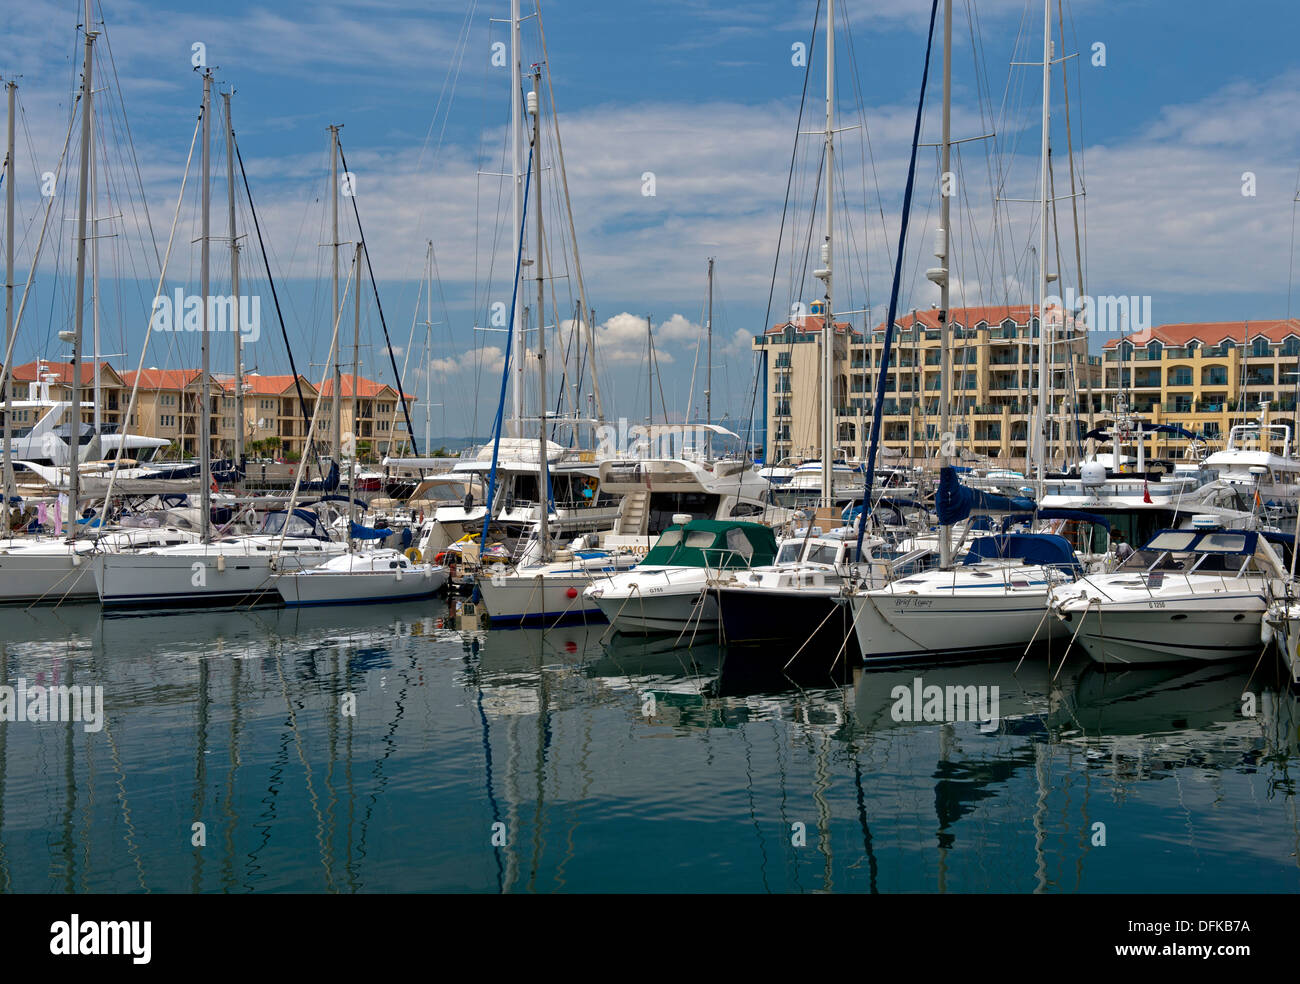 Sailing boats in the Queensway Quay Marina, Gibraltar - Stock Image